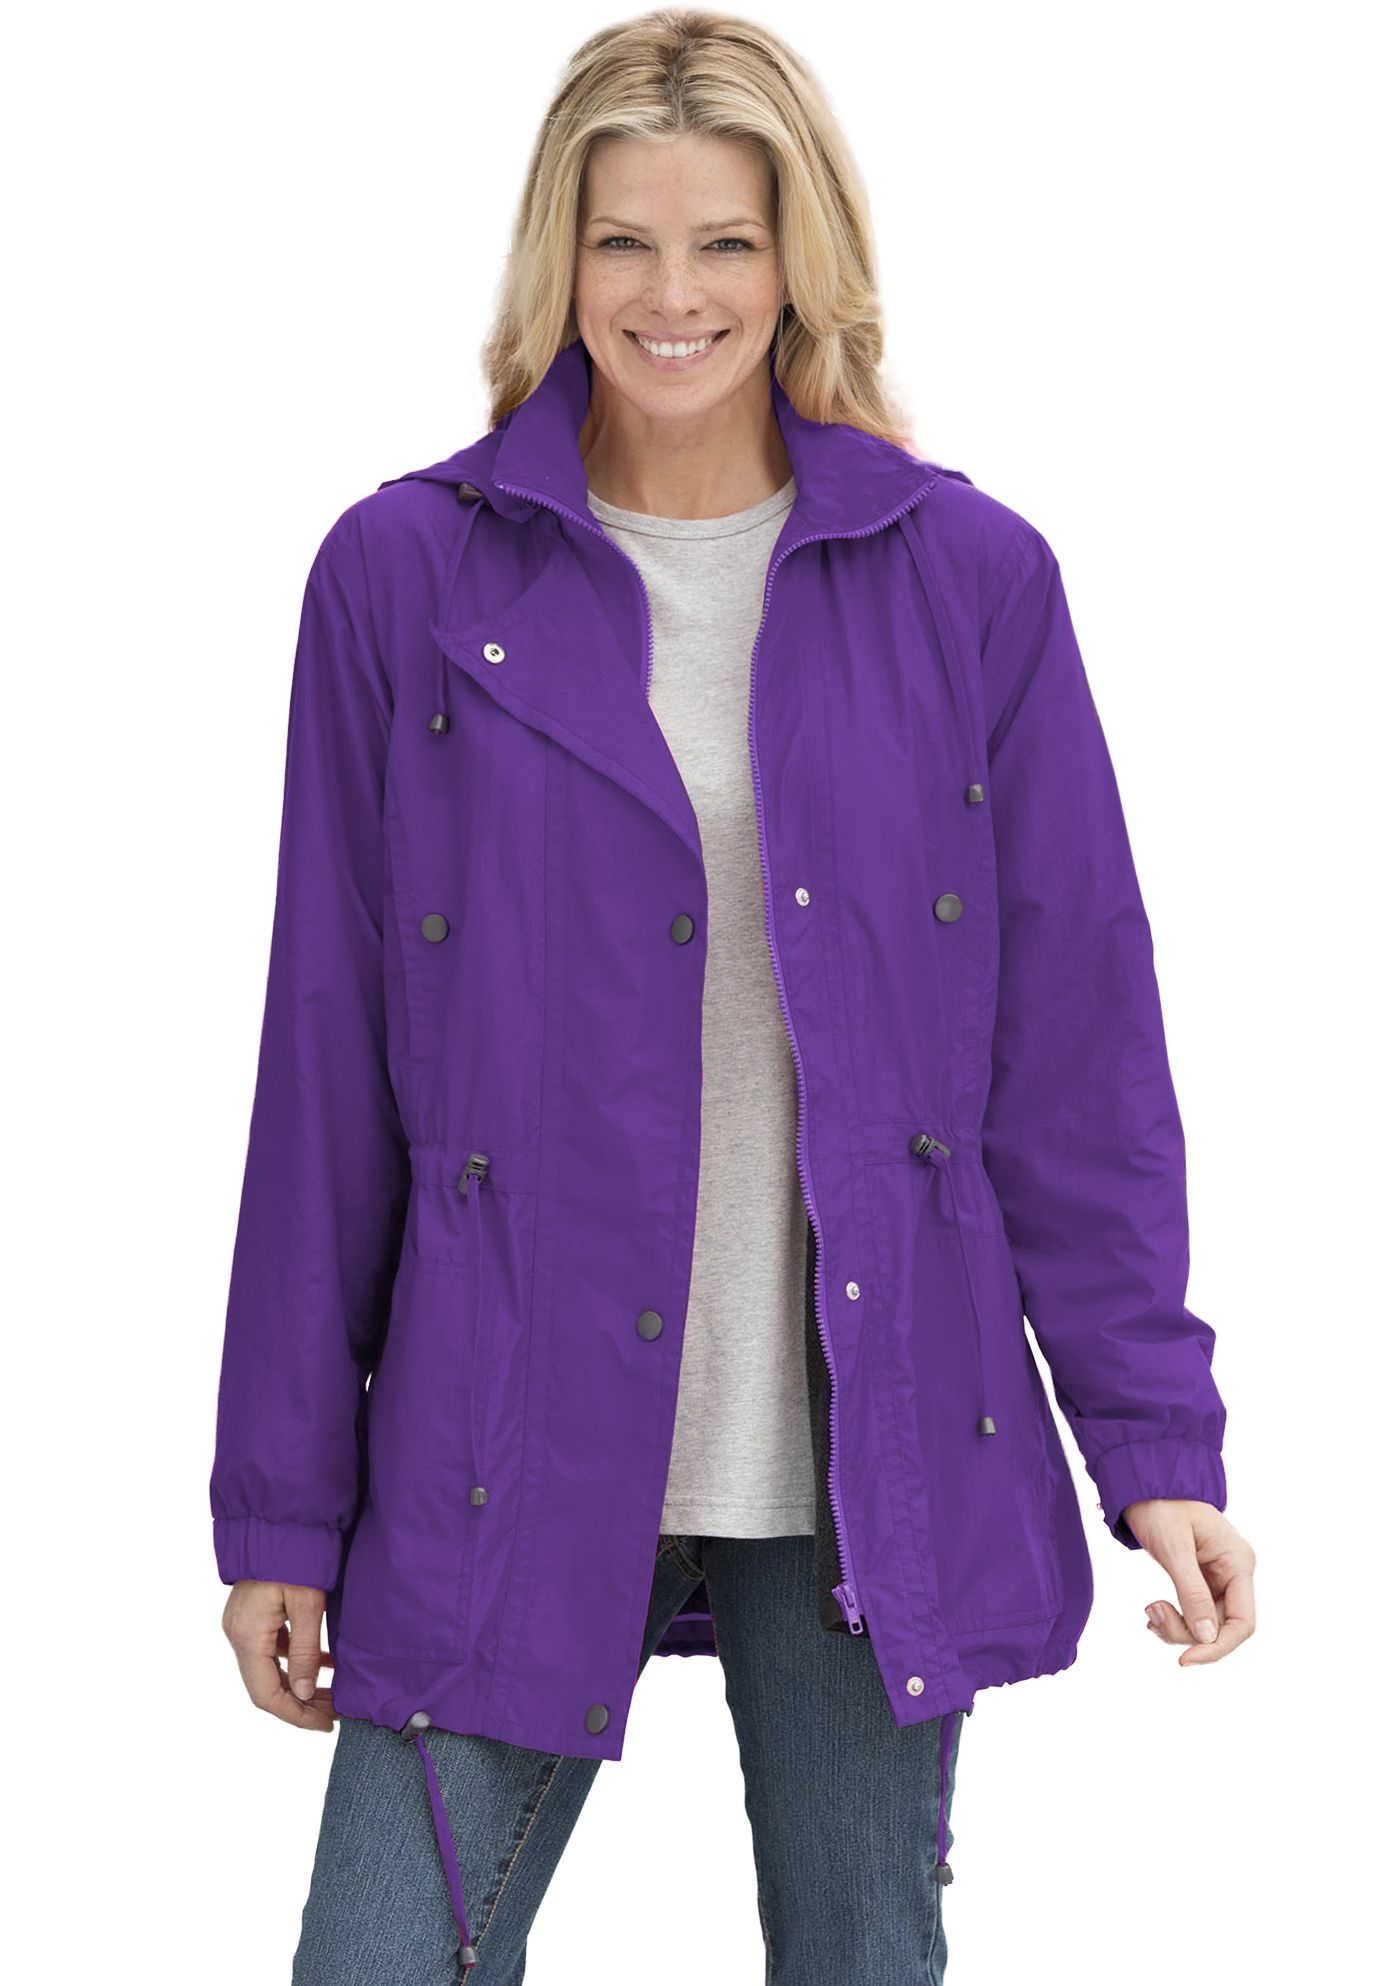 0803a357050 Woman Within plus size jacket anorak in weather-resistant Taslon ...